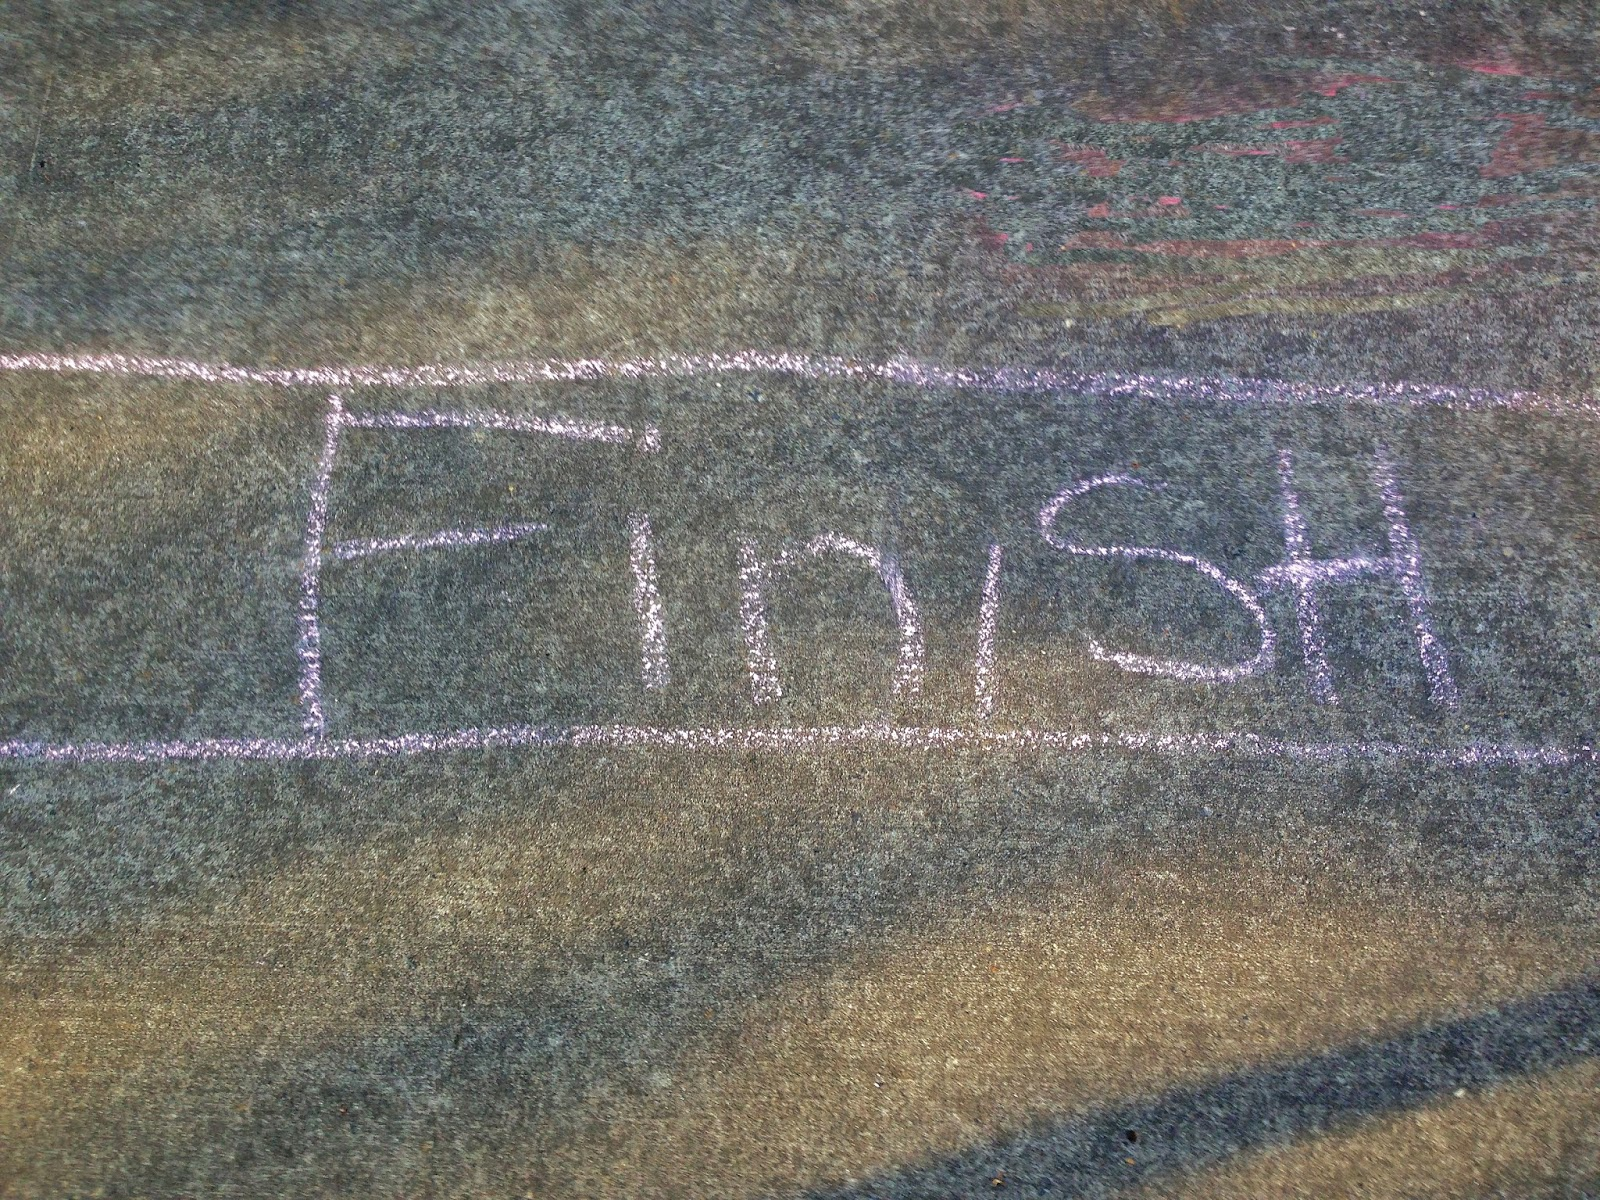 Chalk finish line photo by Nancy Zavada